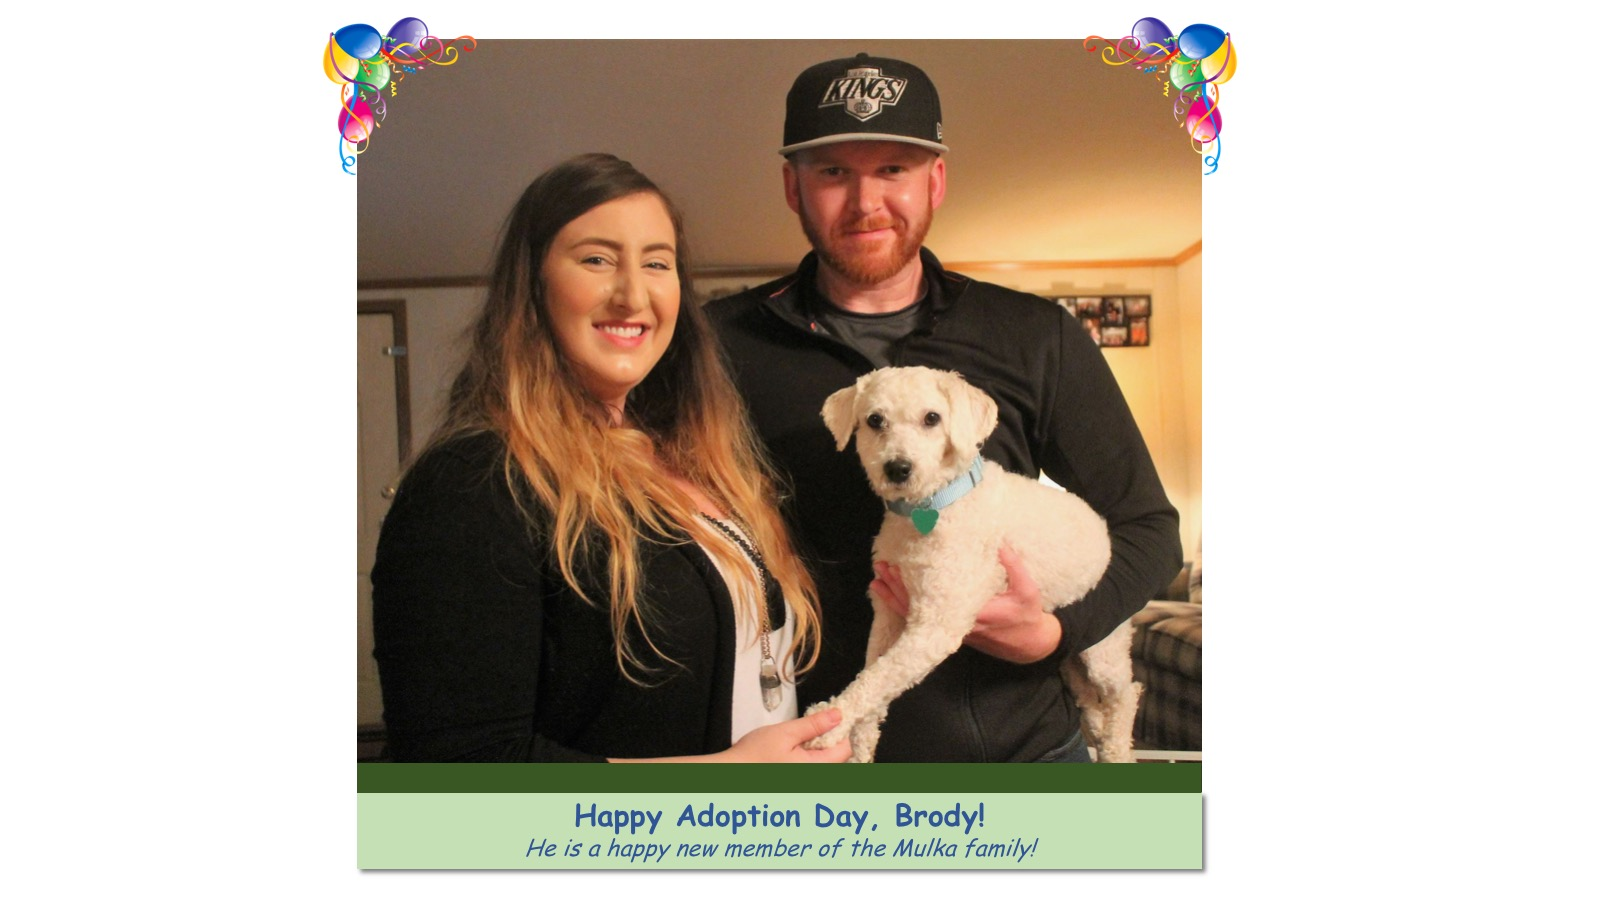 Brody_Adoption_Photo_2018.jpg